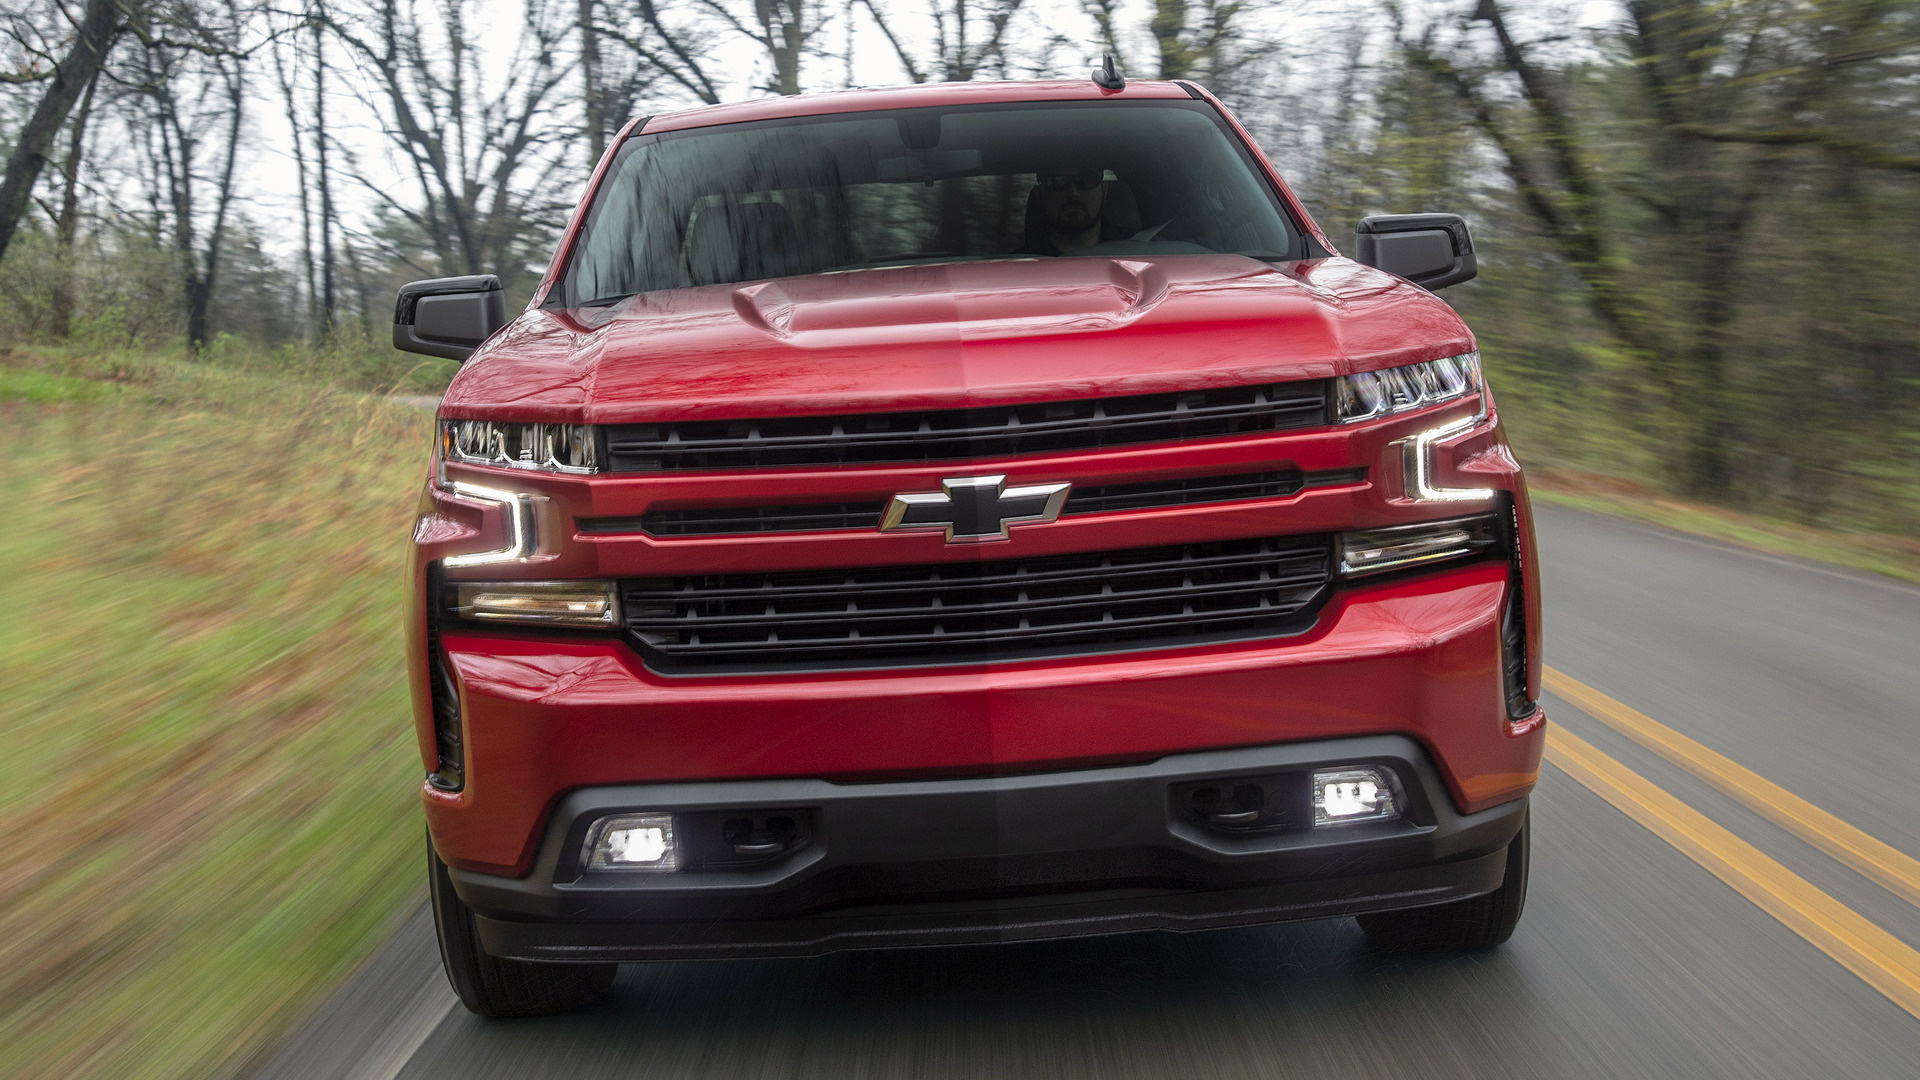 Chevrolet Silverado RST Crew Cab 2019 Wallpapers And HD